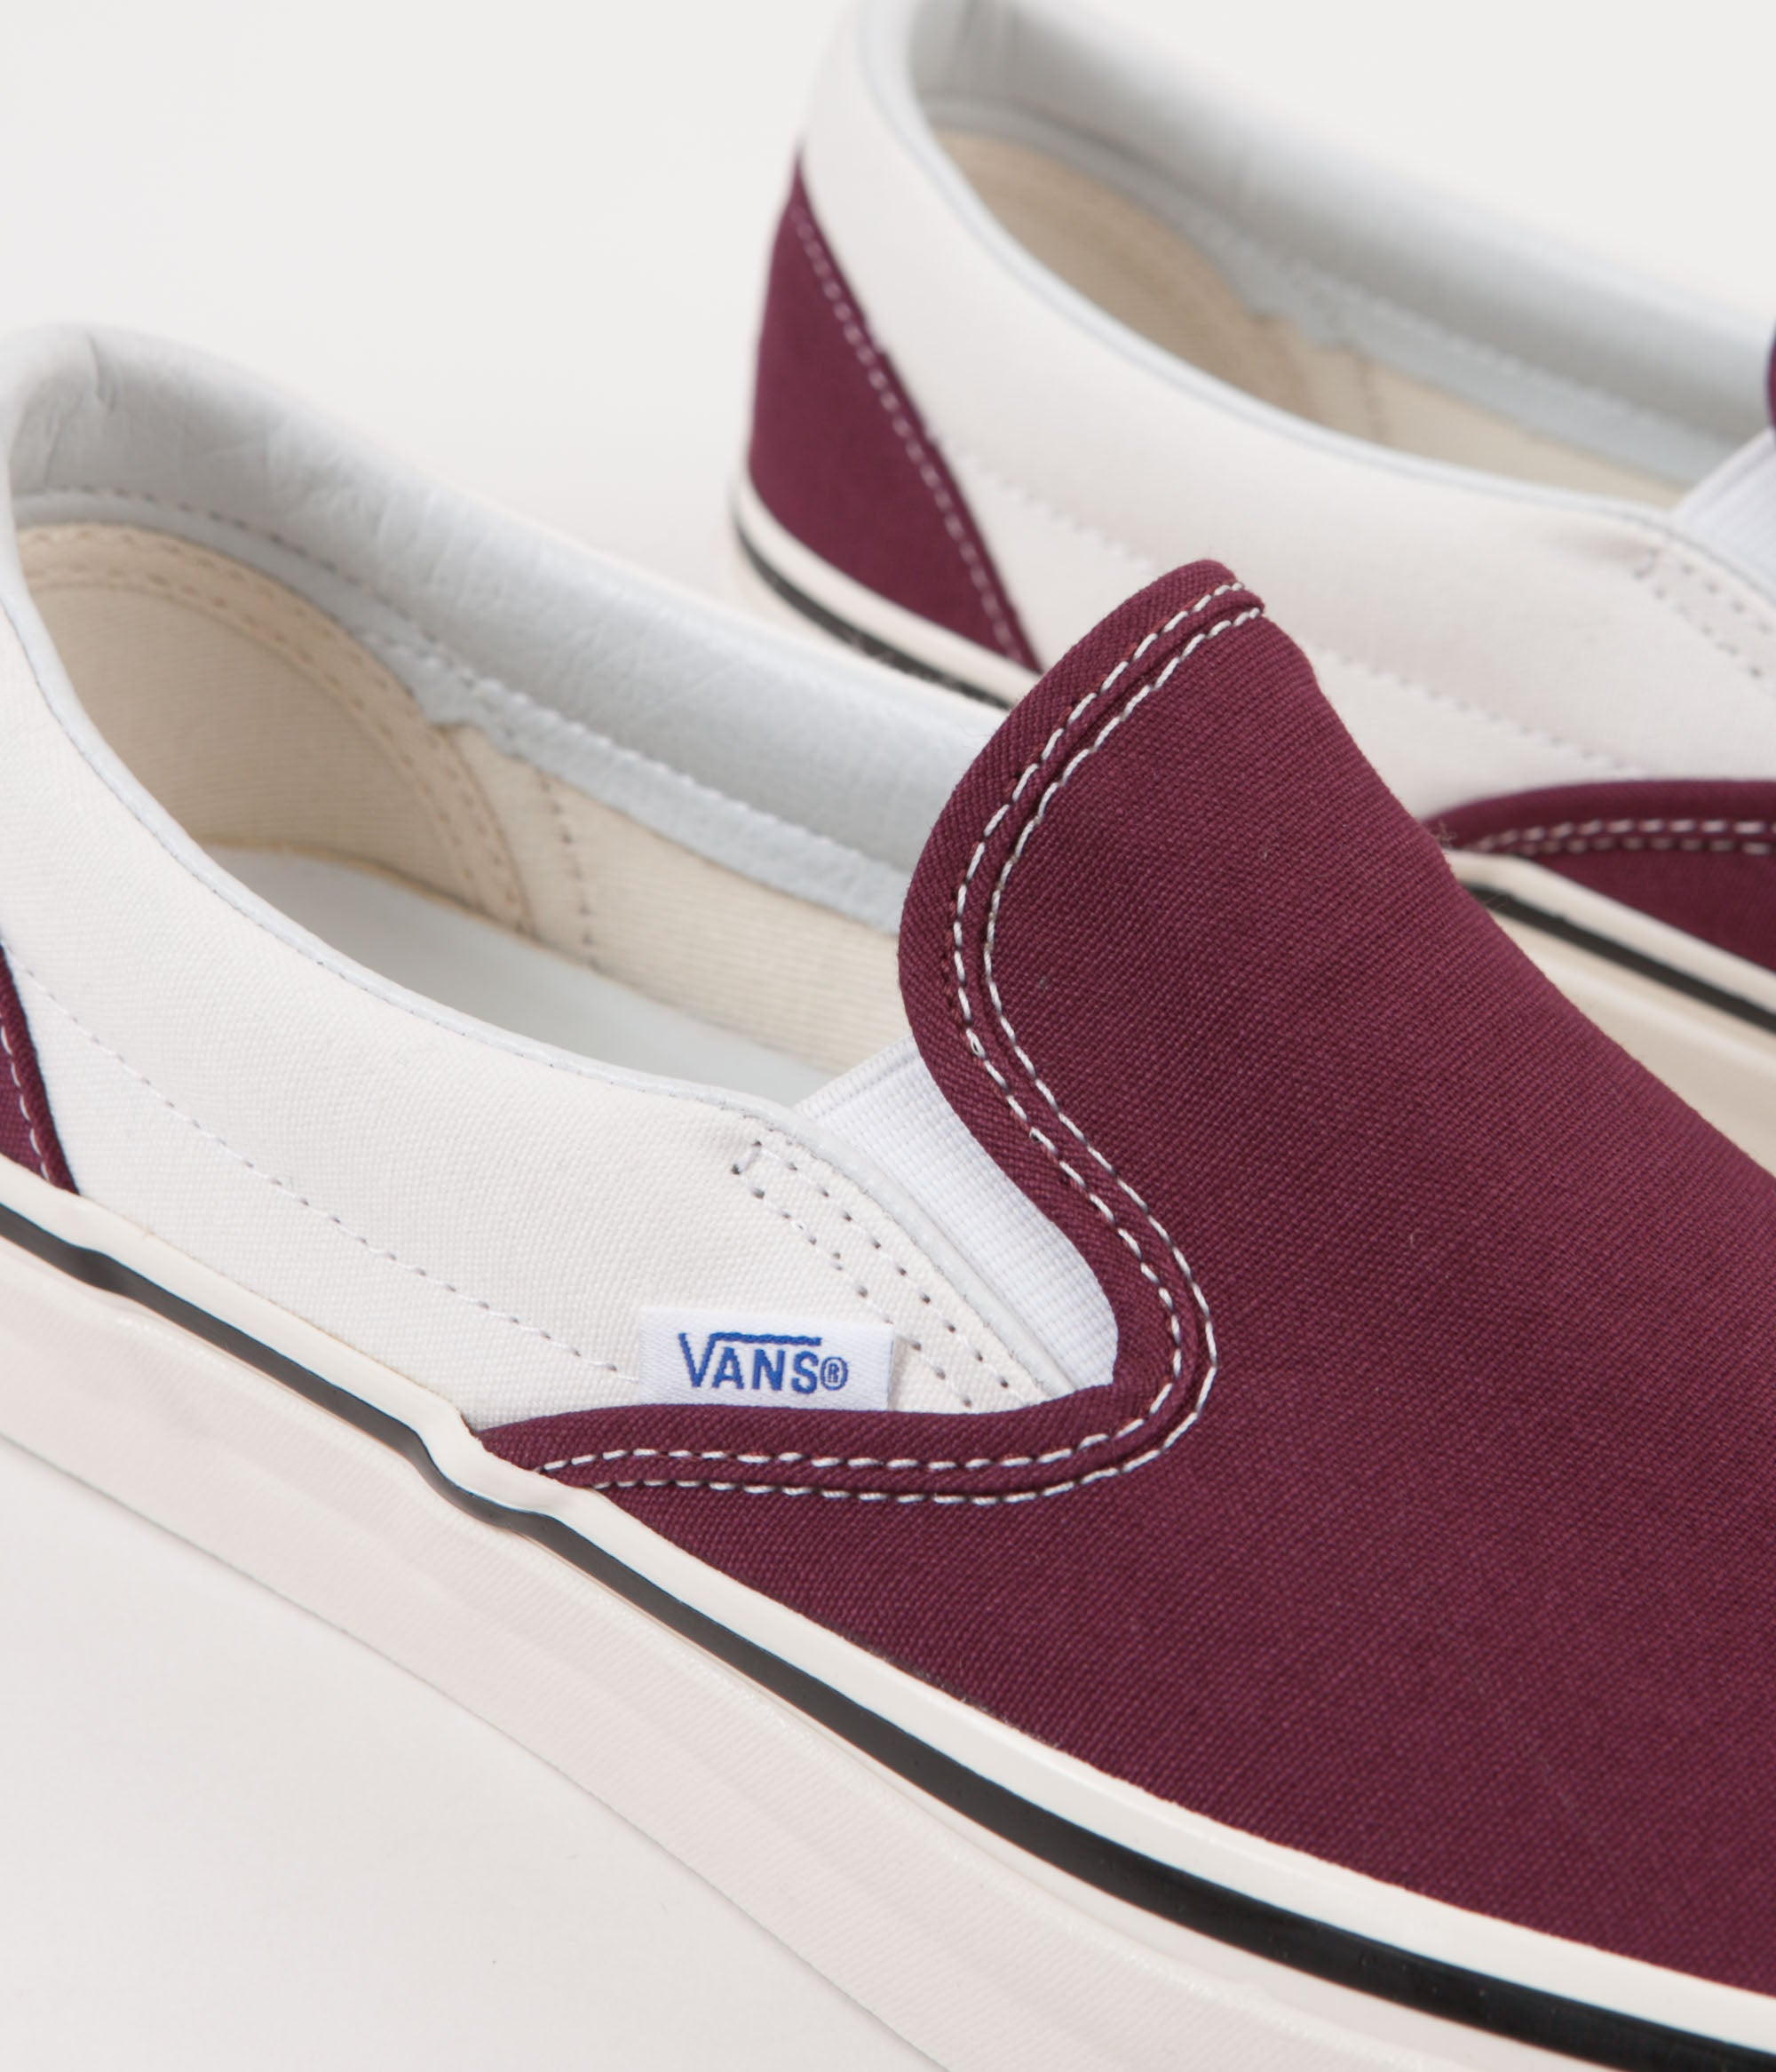 741d944b54e07f ... Vans Classic Slip-On 98 DX Anaheim Factory Shoes - OG Burgundy   White  ...